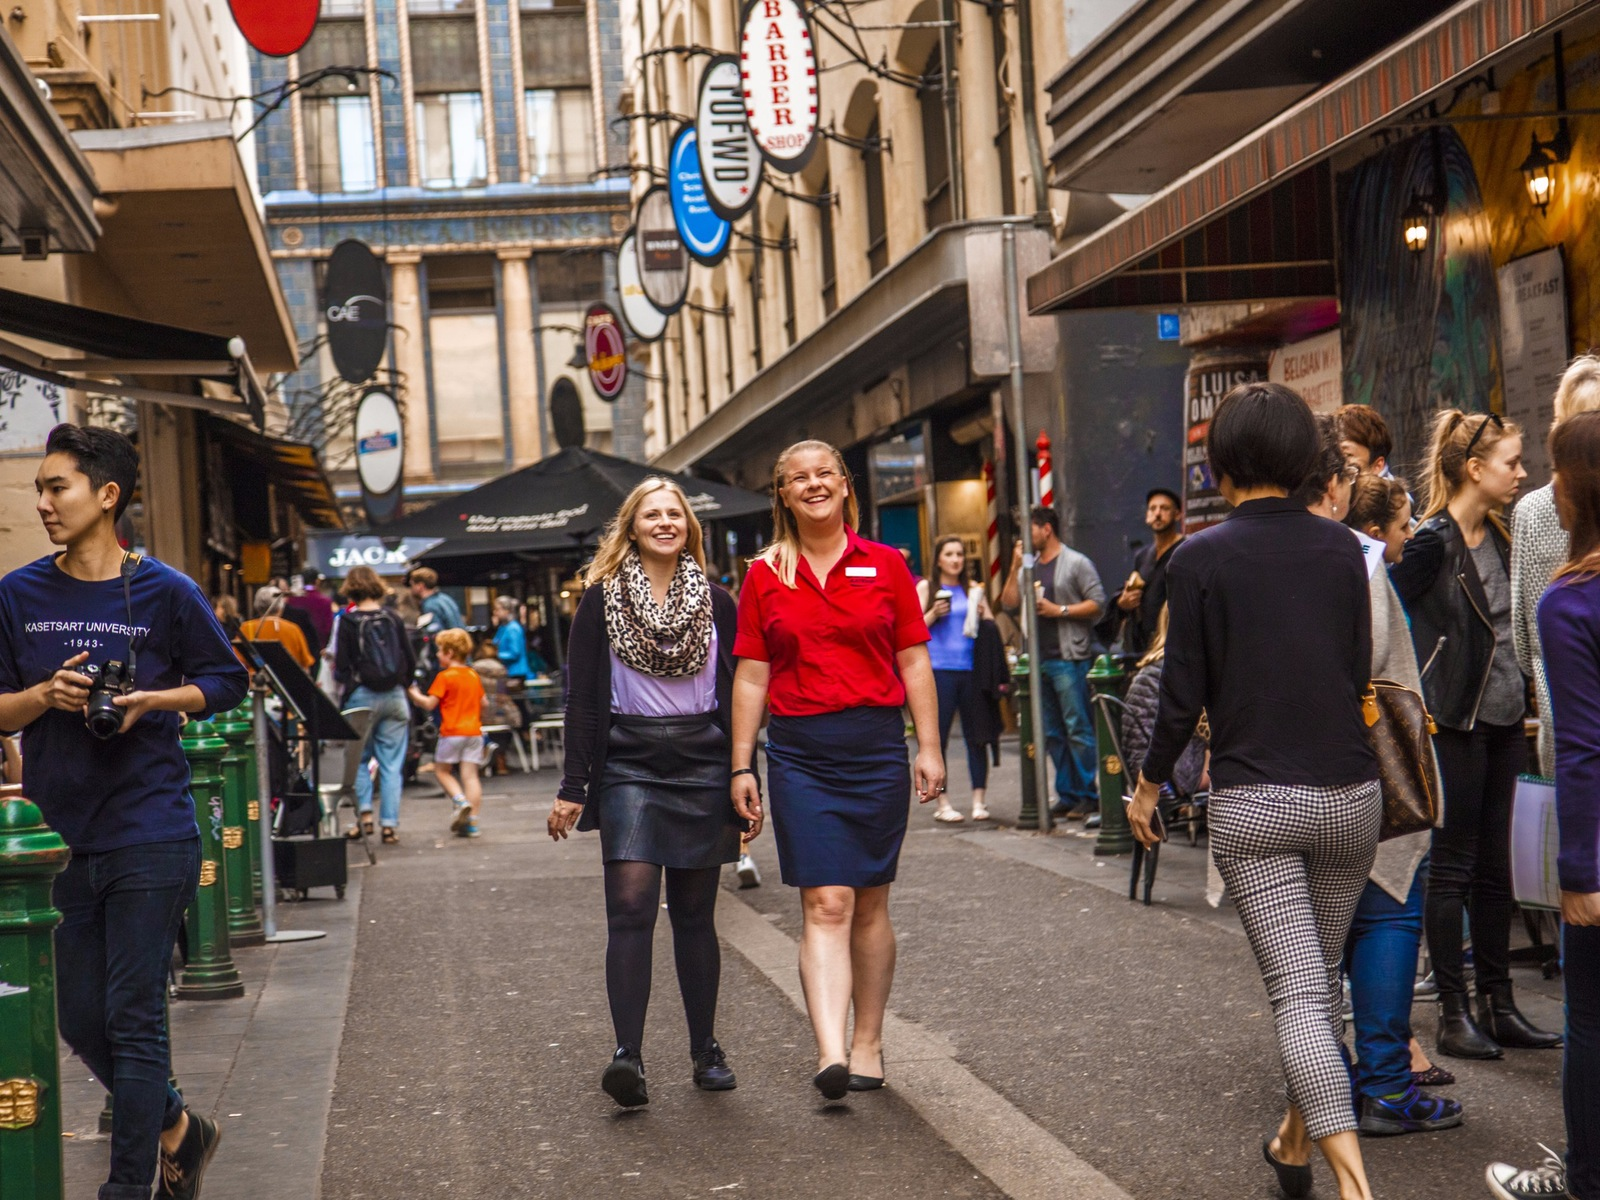 AAT Kings guide and guest in Melbourne's colourful laneways